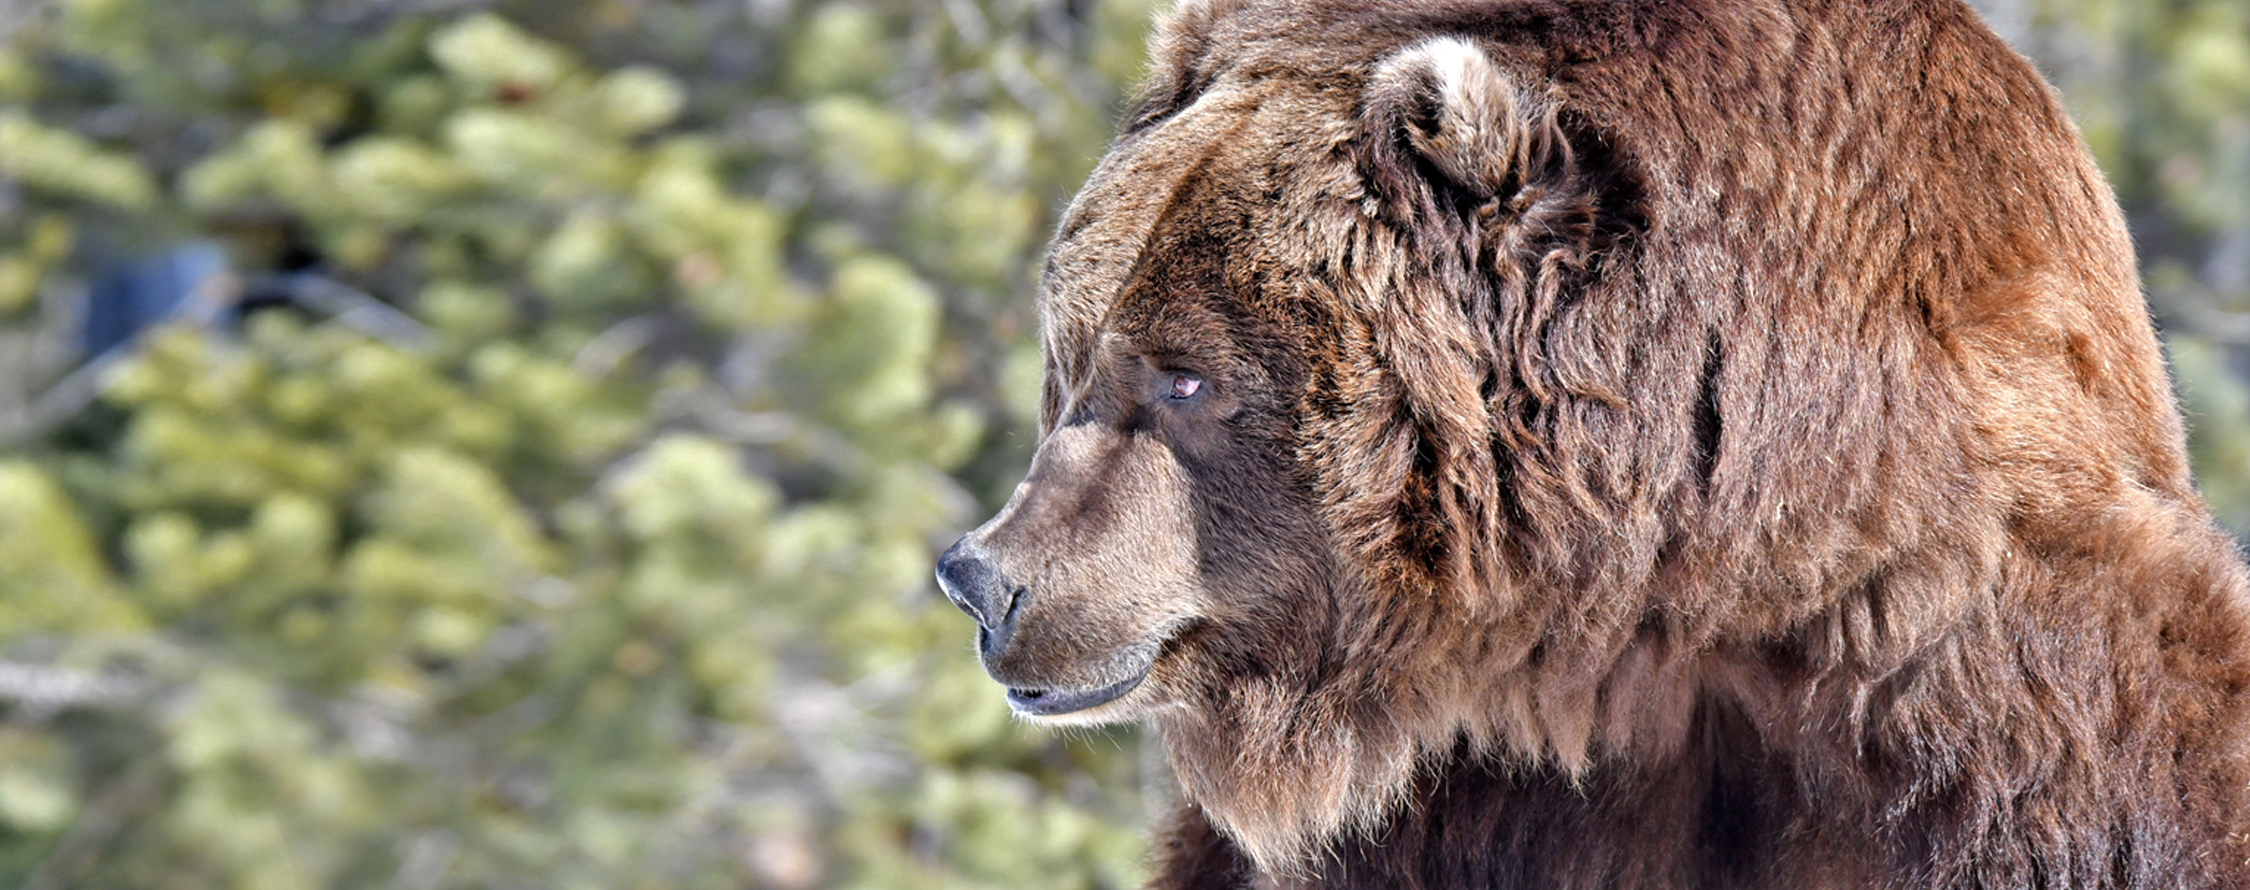 adopt-a-grizzly-bear